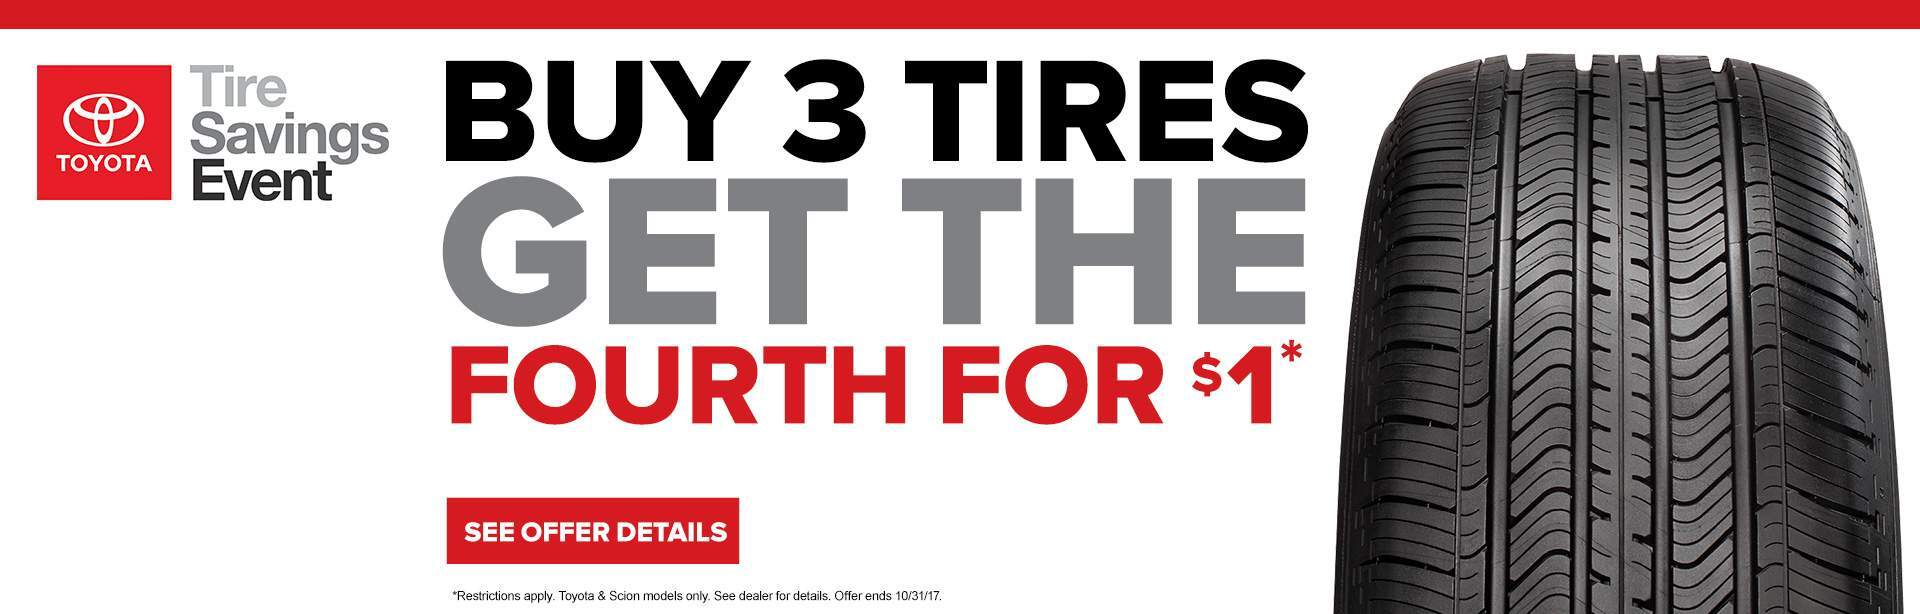 October Tire Savings